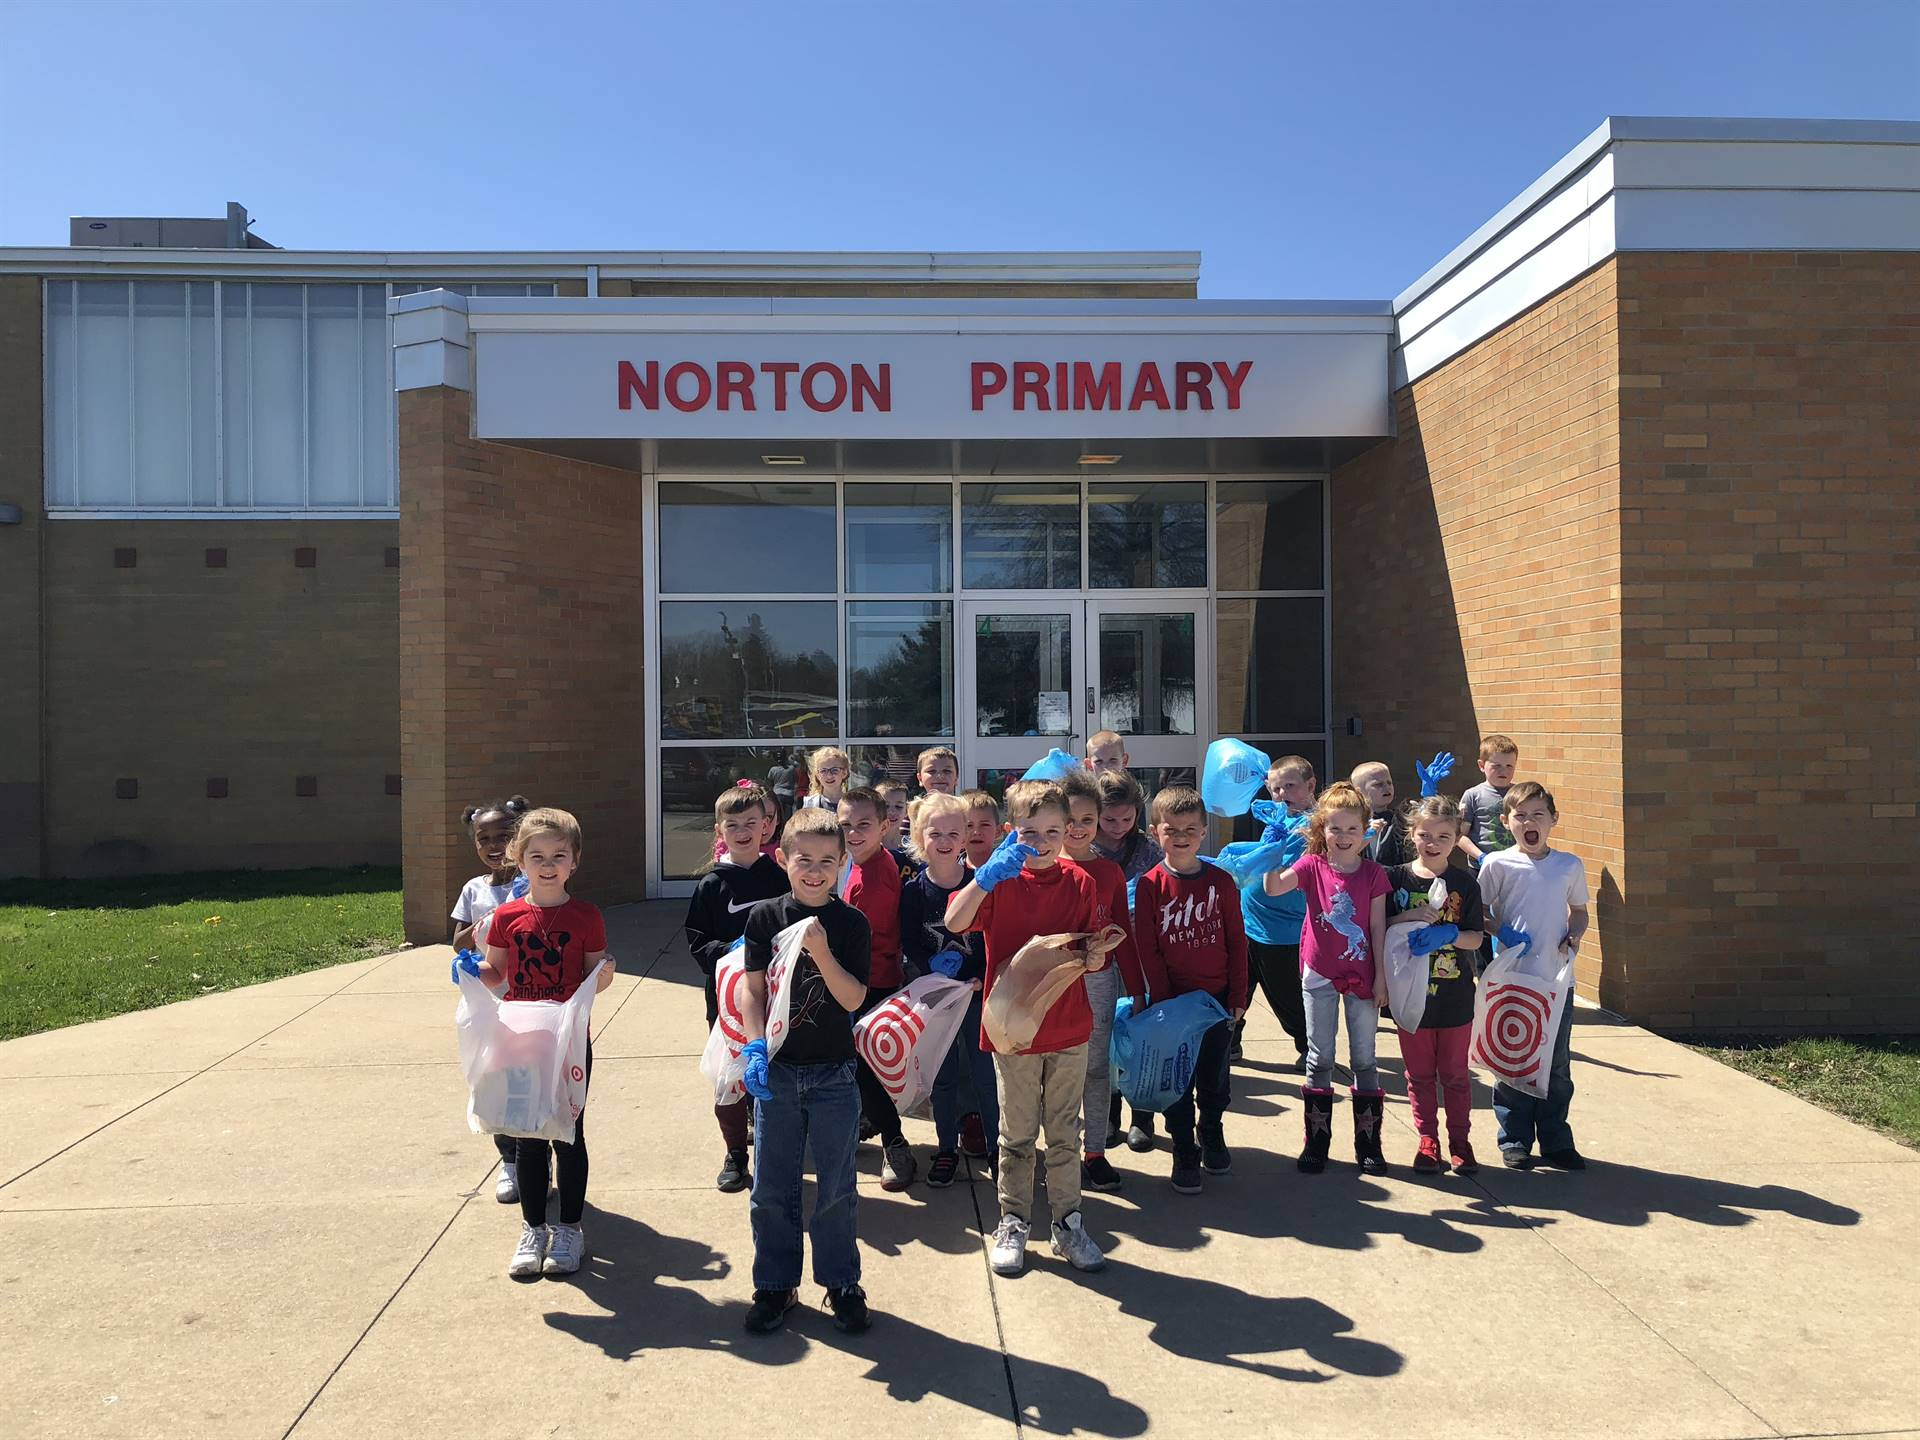 Mrs. Mattle's class helped Norton's Primary stay clean in honor of Earth Day!